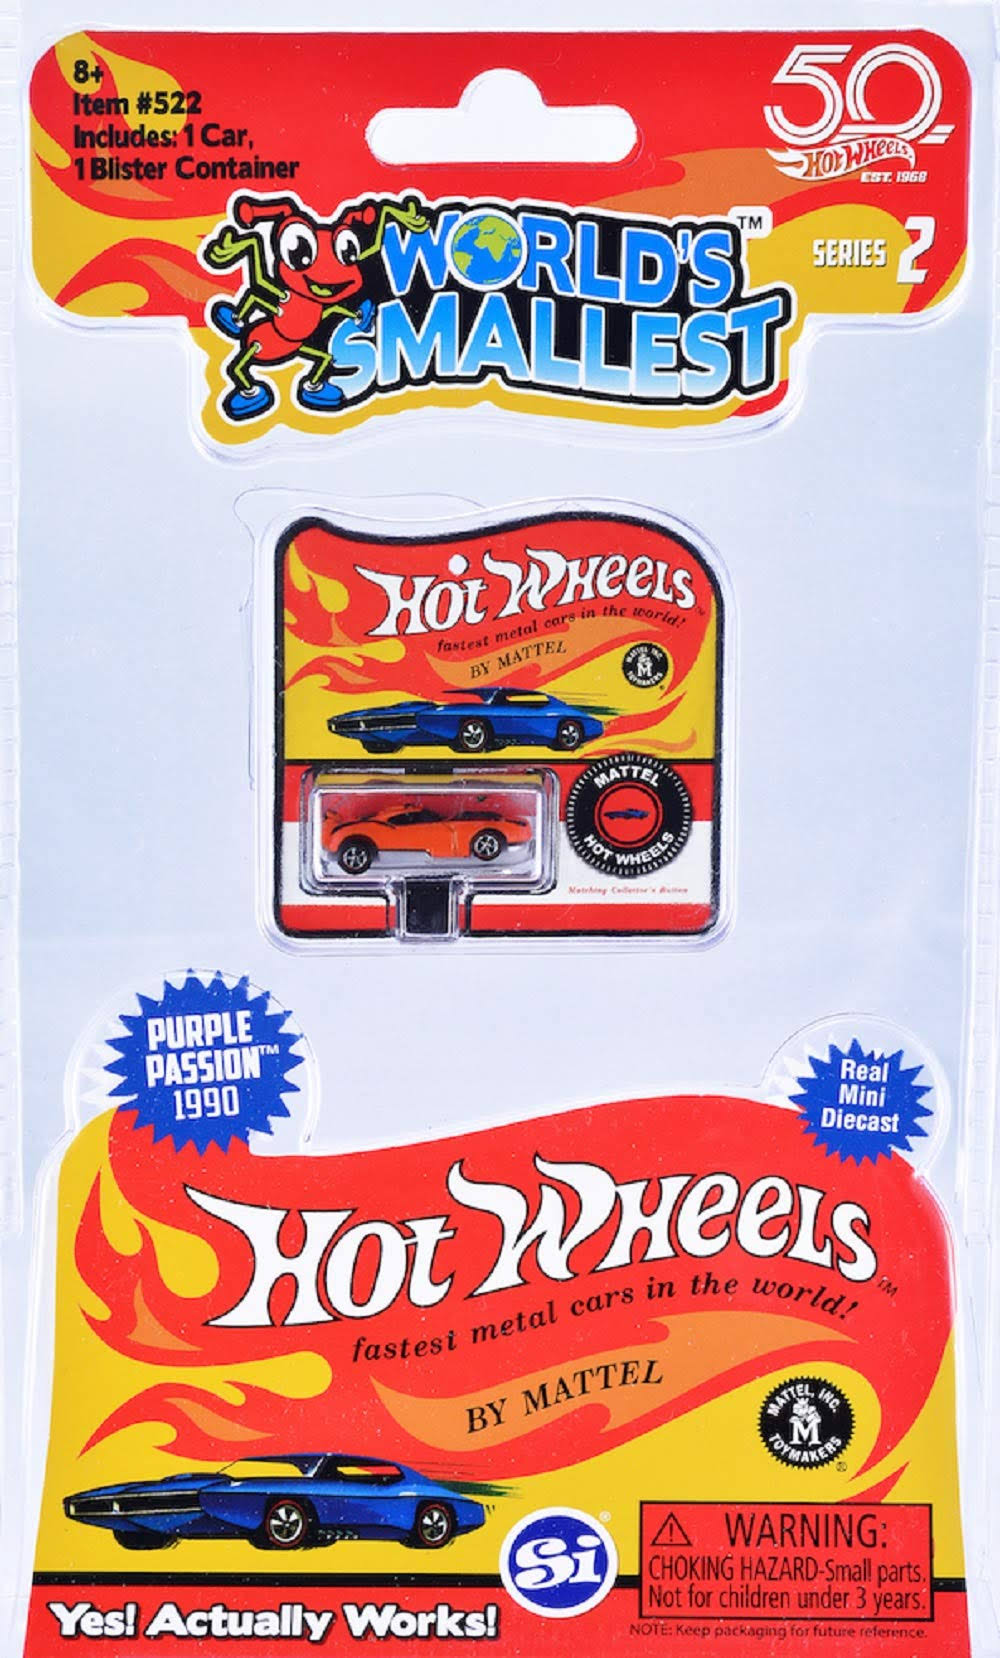 Hot Wheels World's Smallest Toy, Series 2